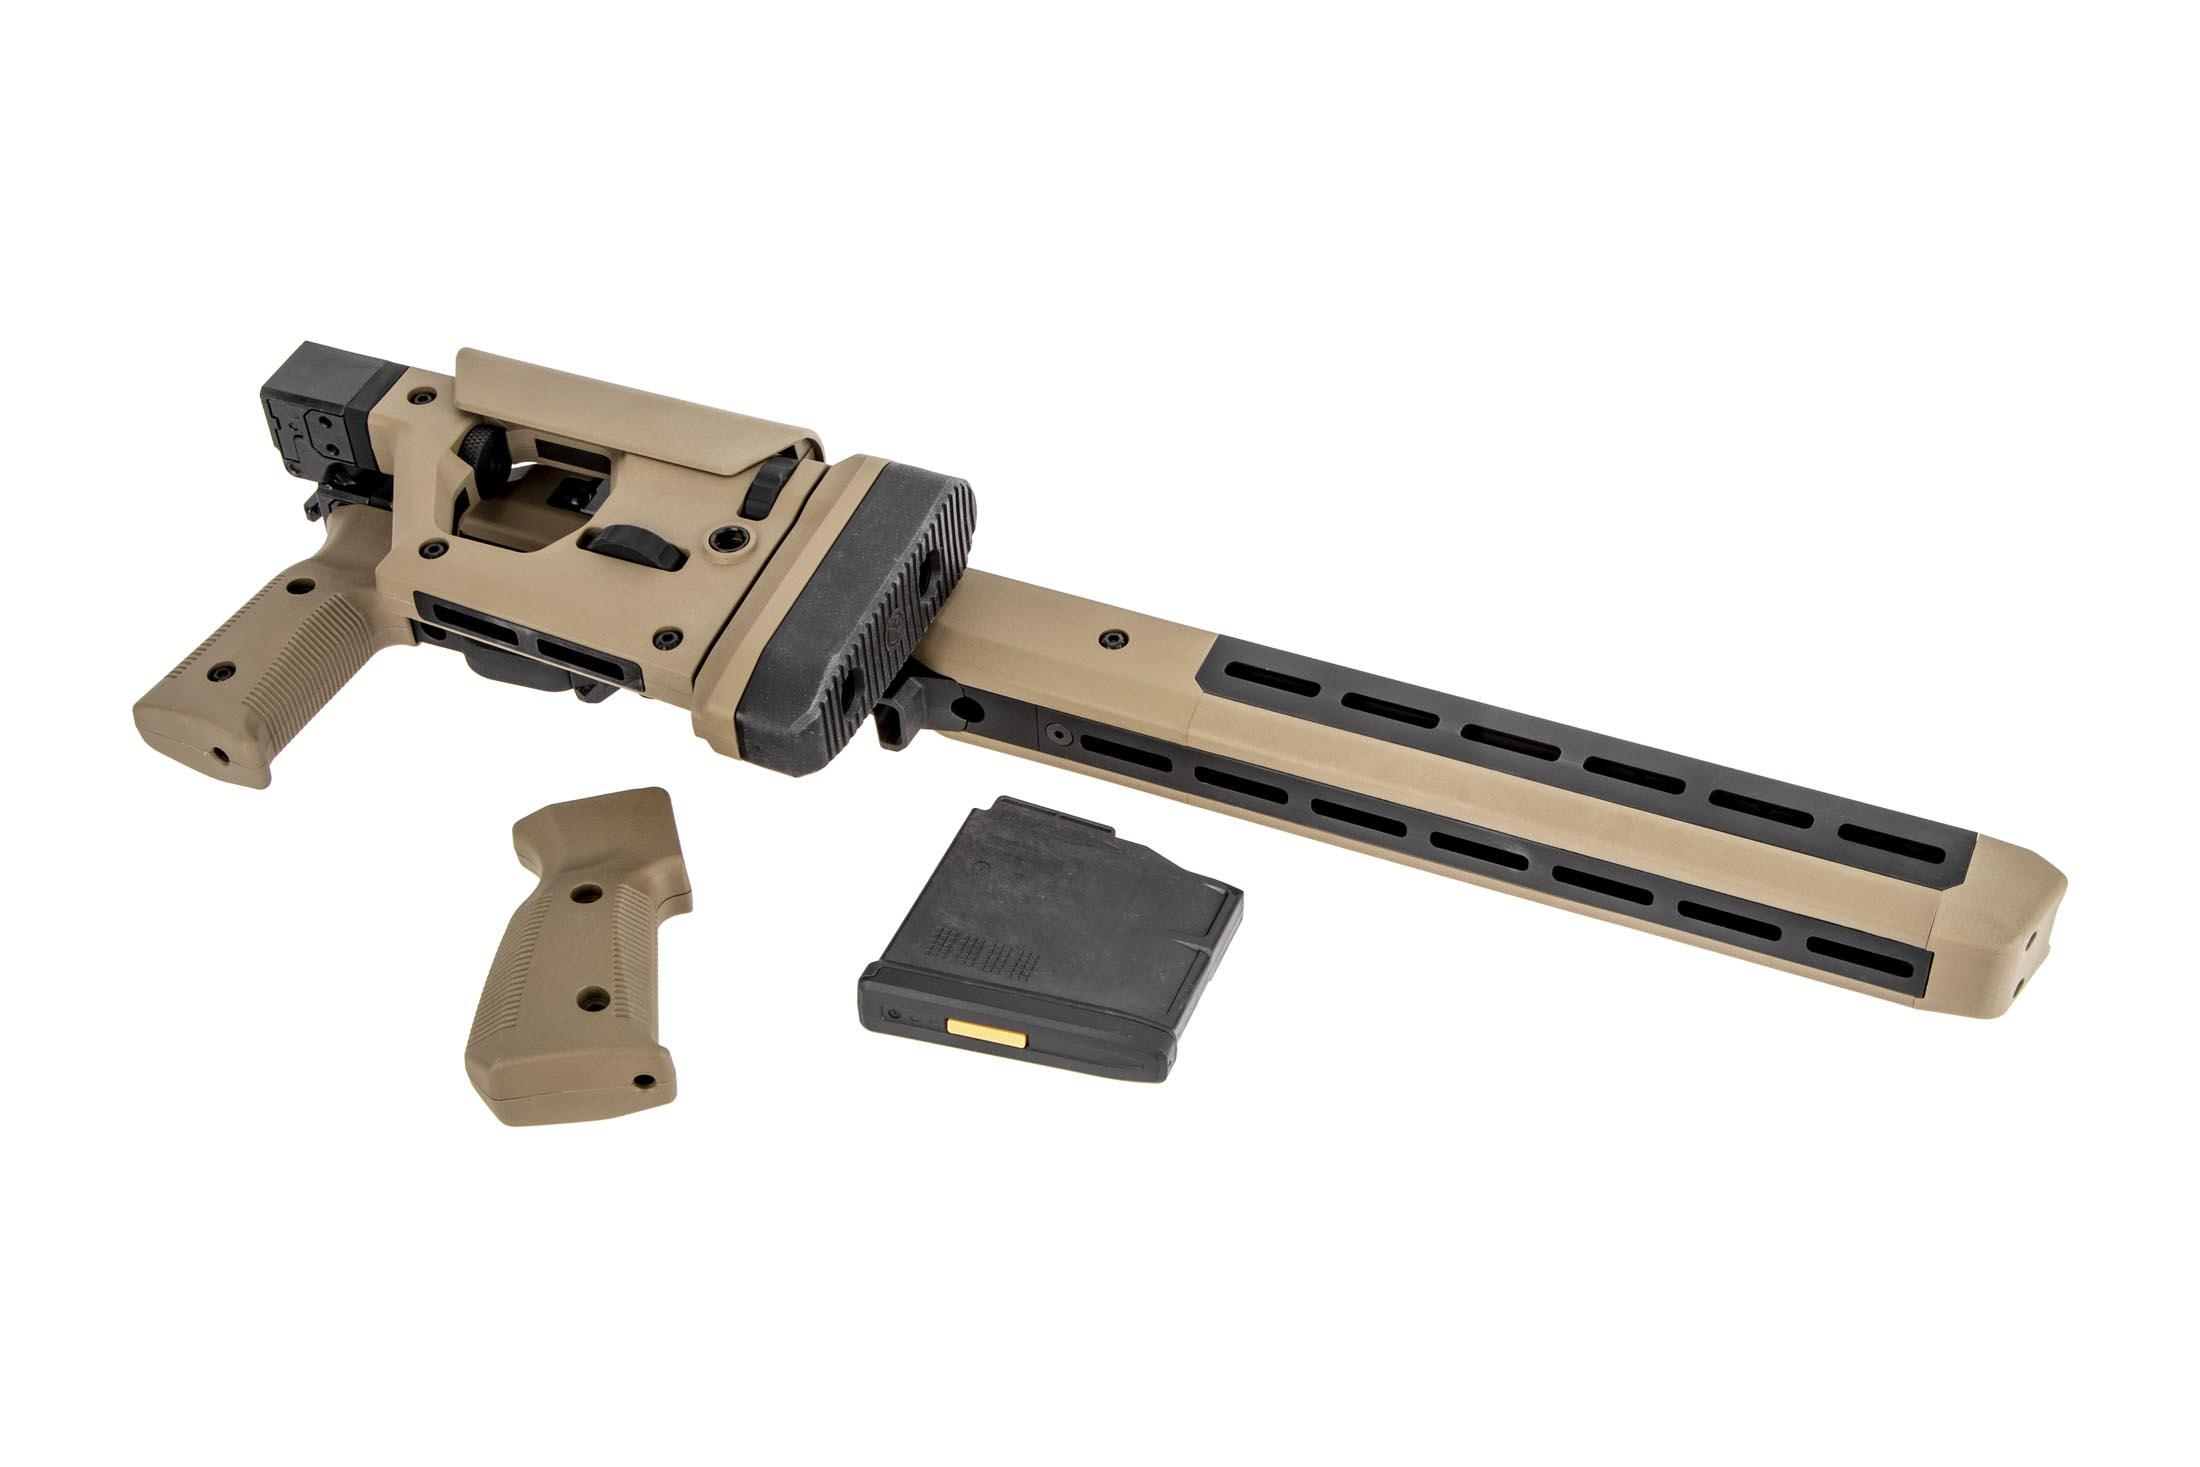 Magpul Pro 700L Chassis Long Action Folding Stock - Flat Dark Earth